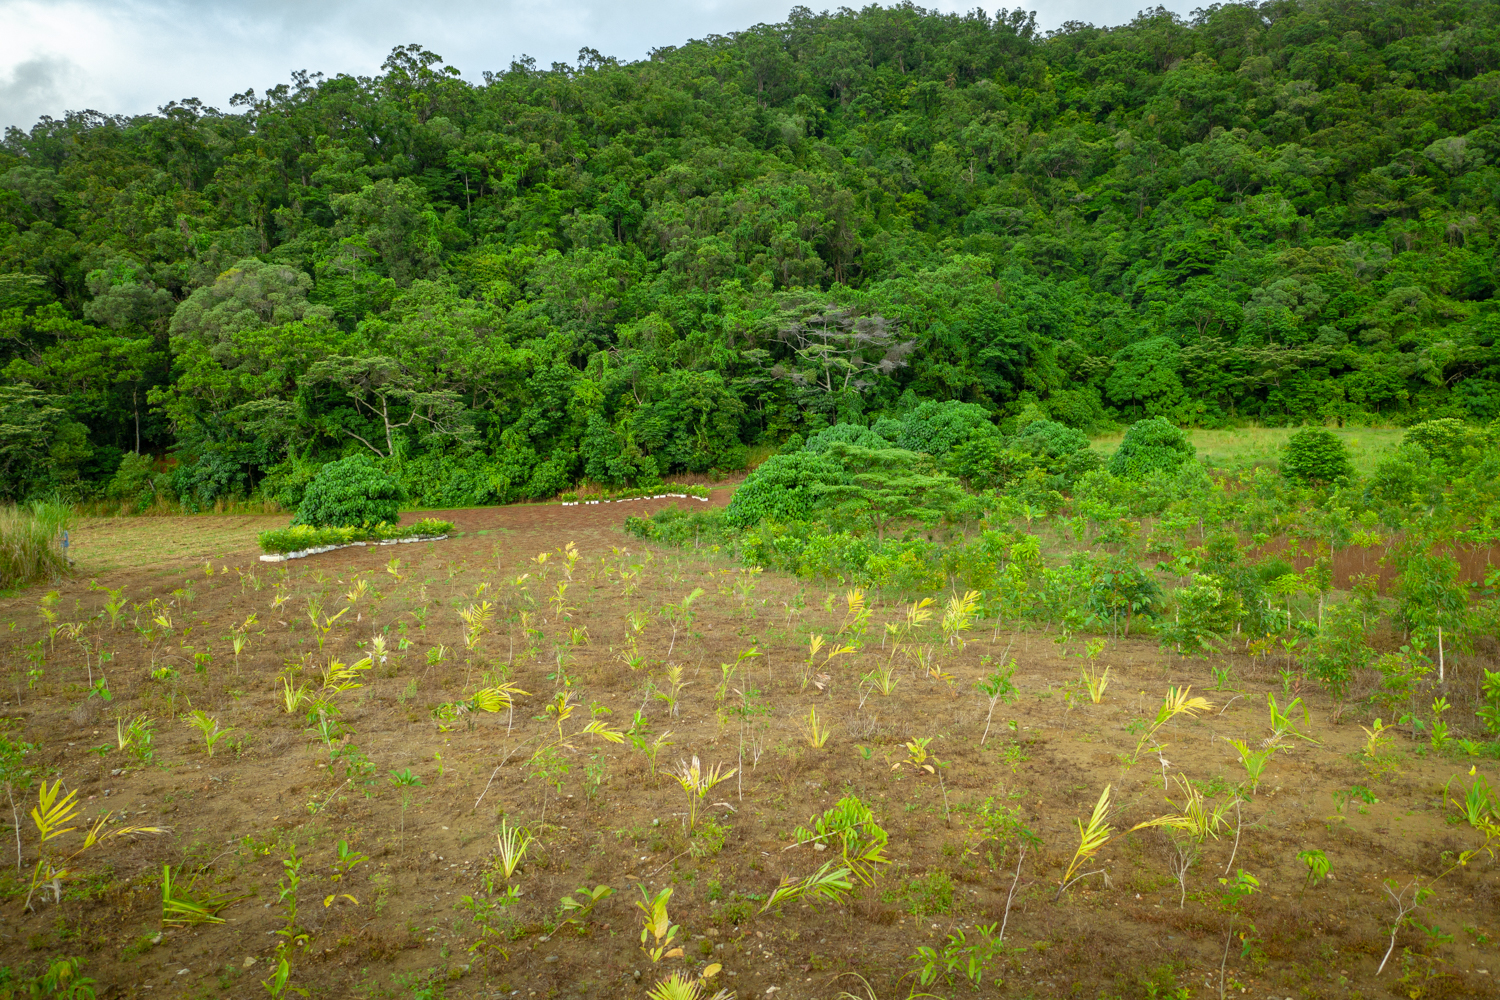 20190504-Rainforest_Rescue_Tree_Planting_Image-Martin_Stringer_0185